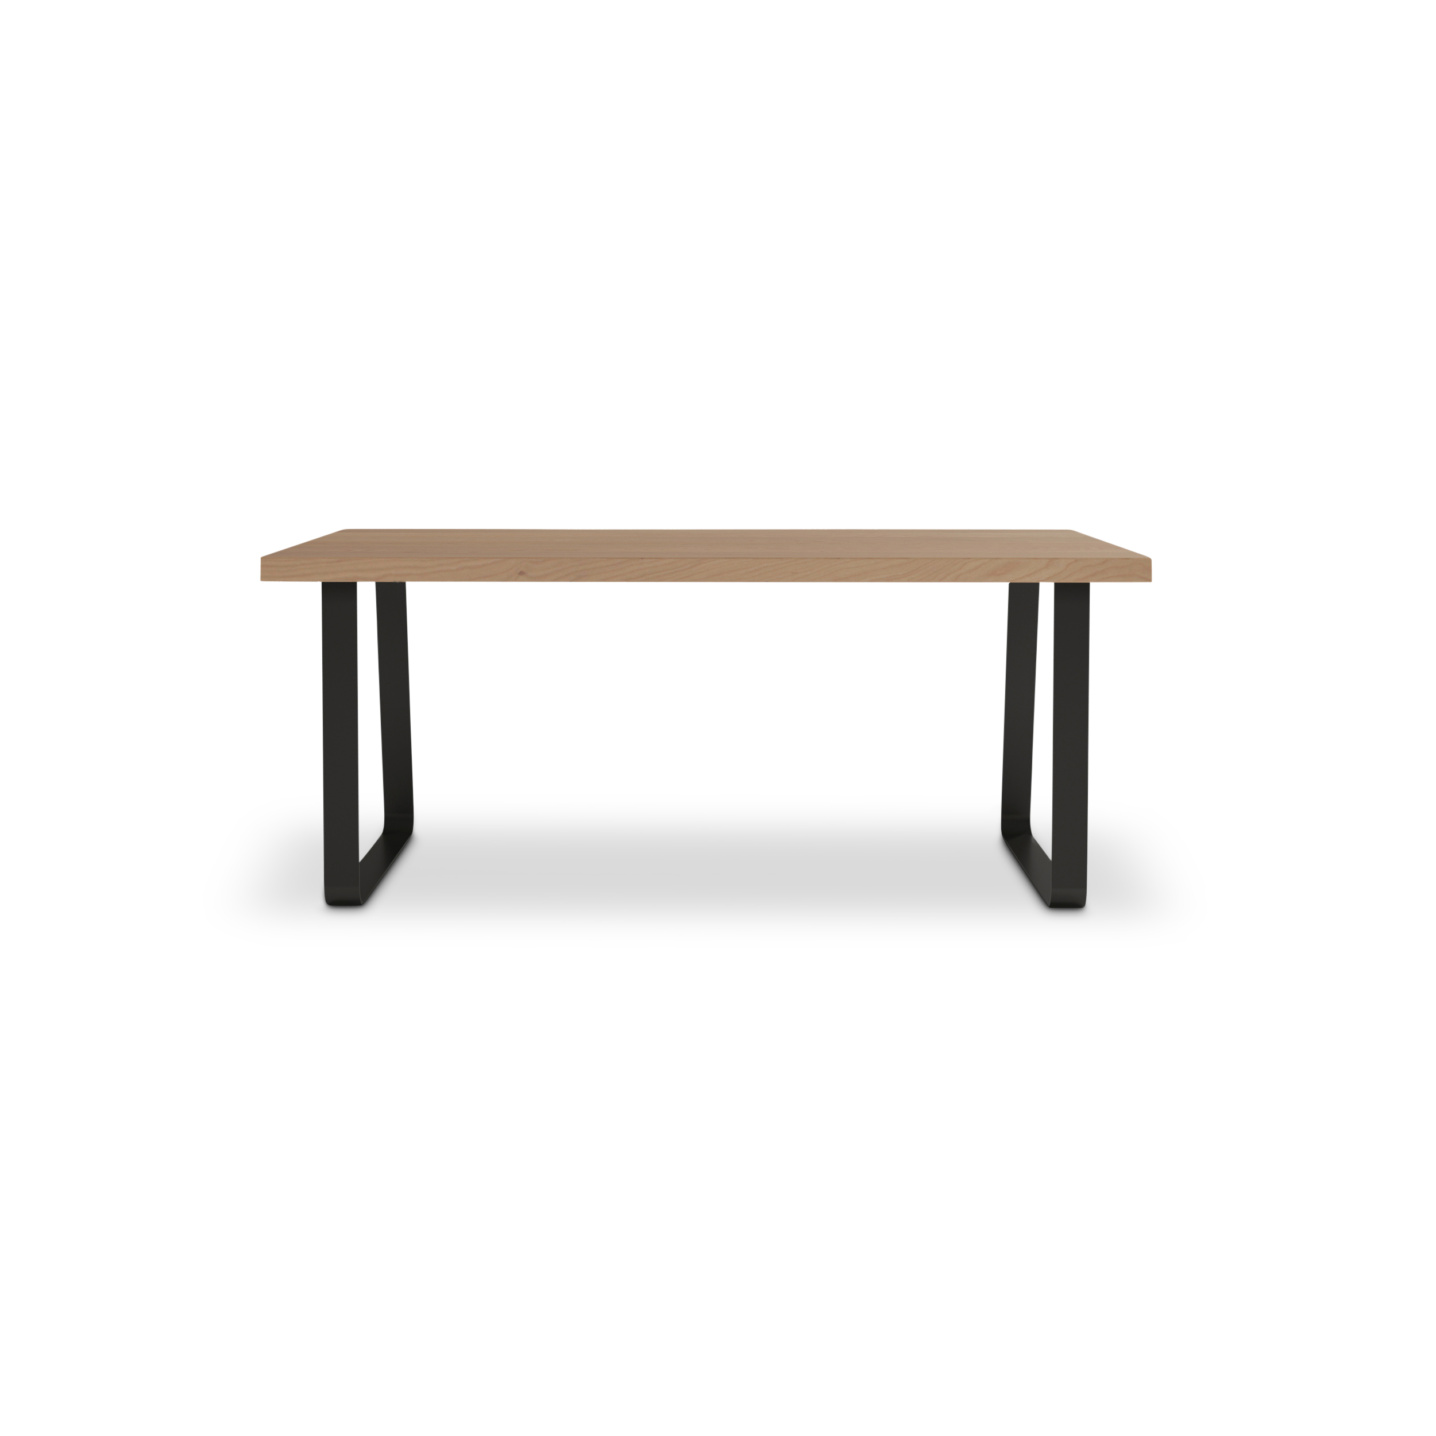 Swedish cherry wooden table with metal curved legs